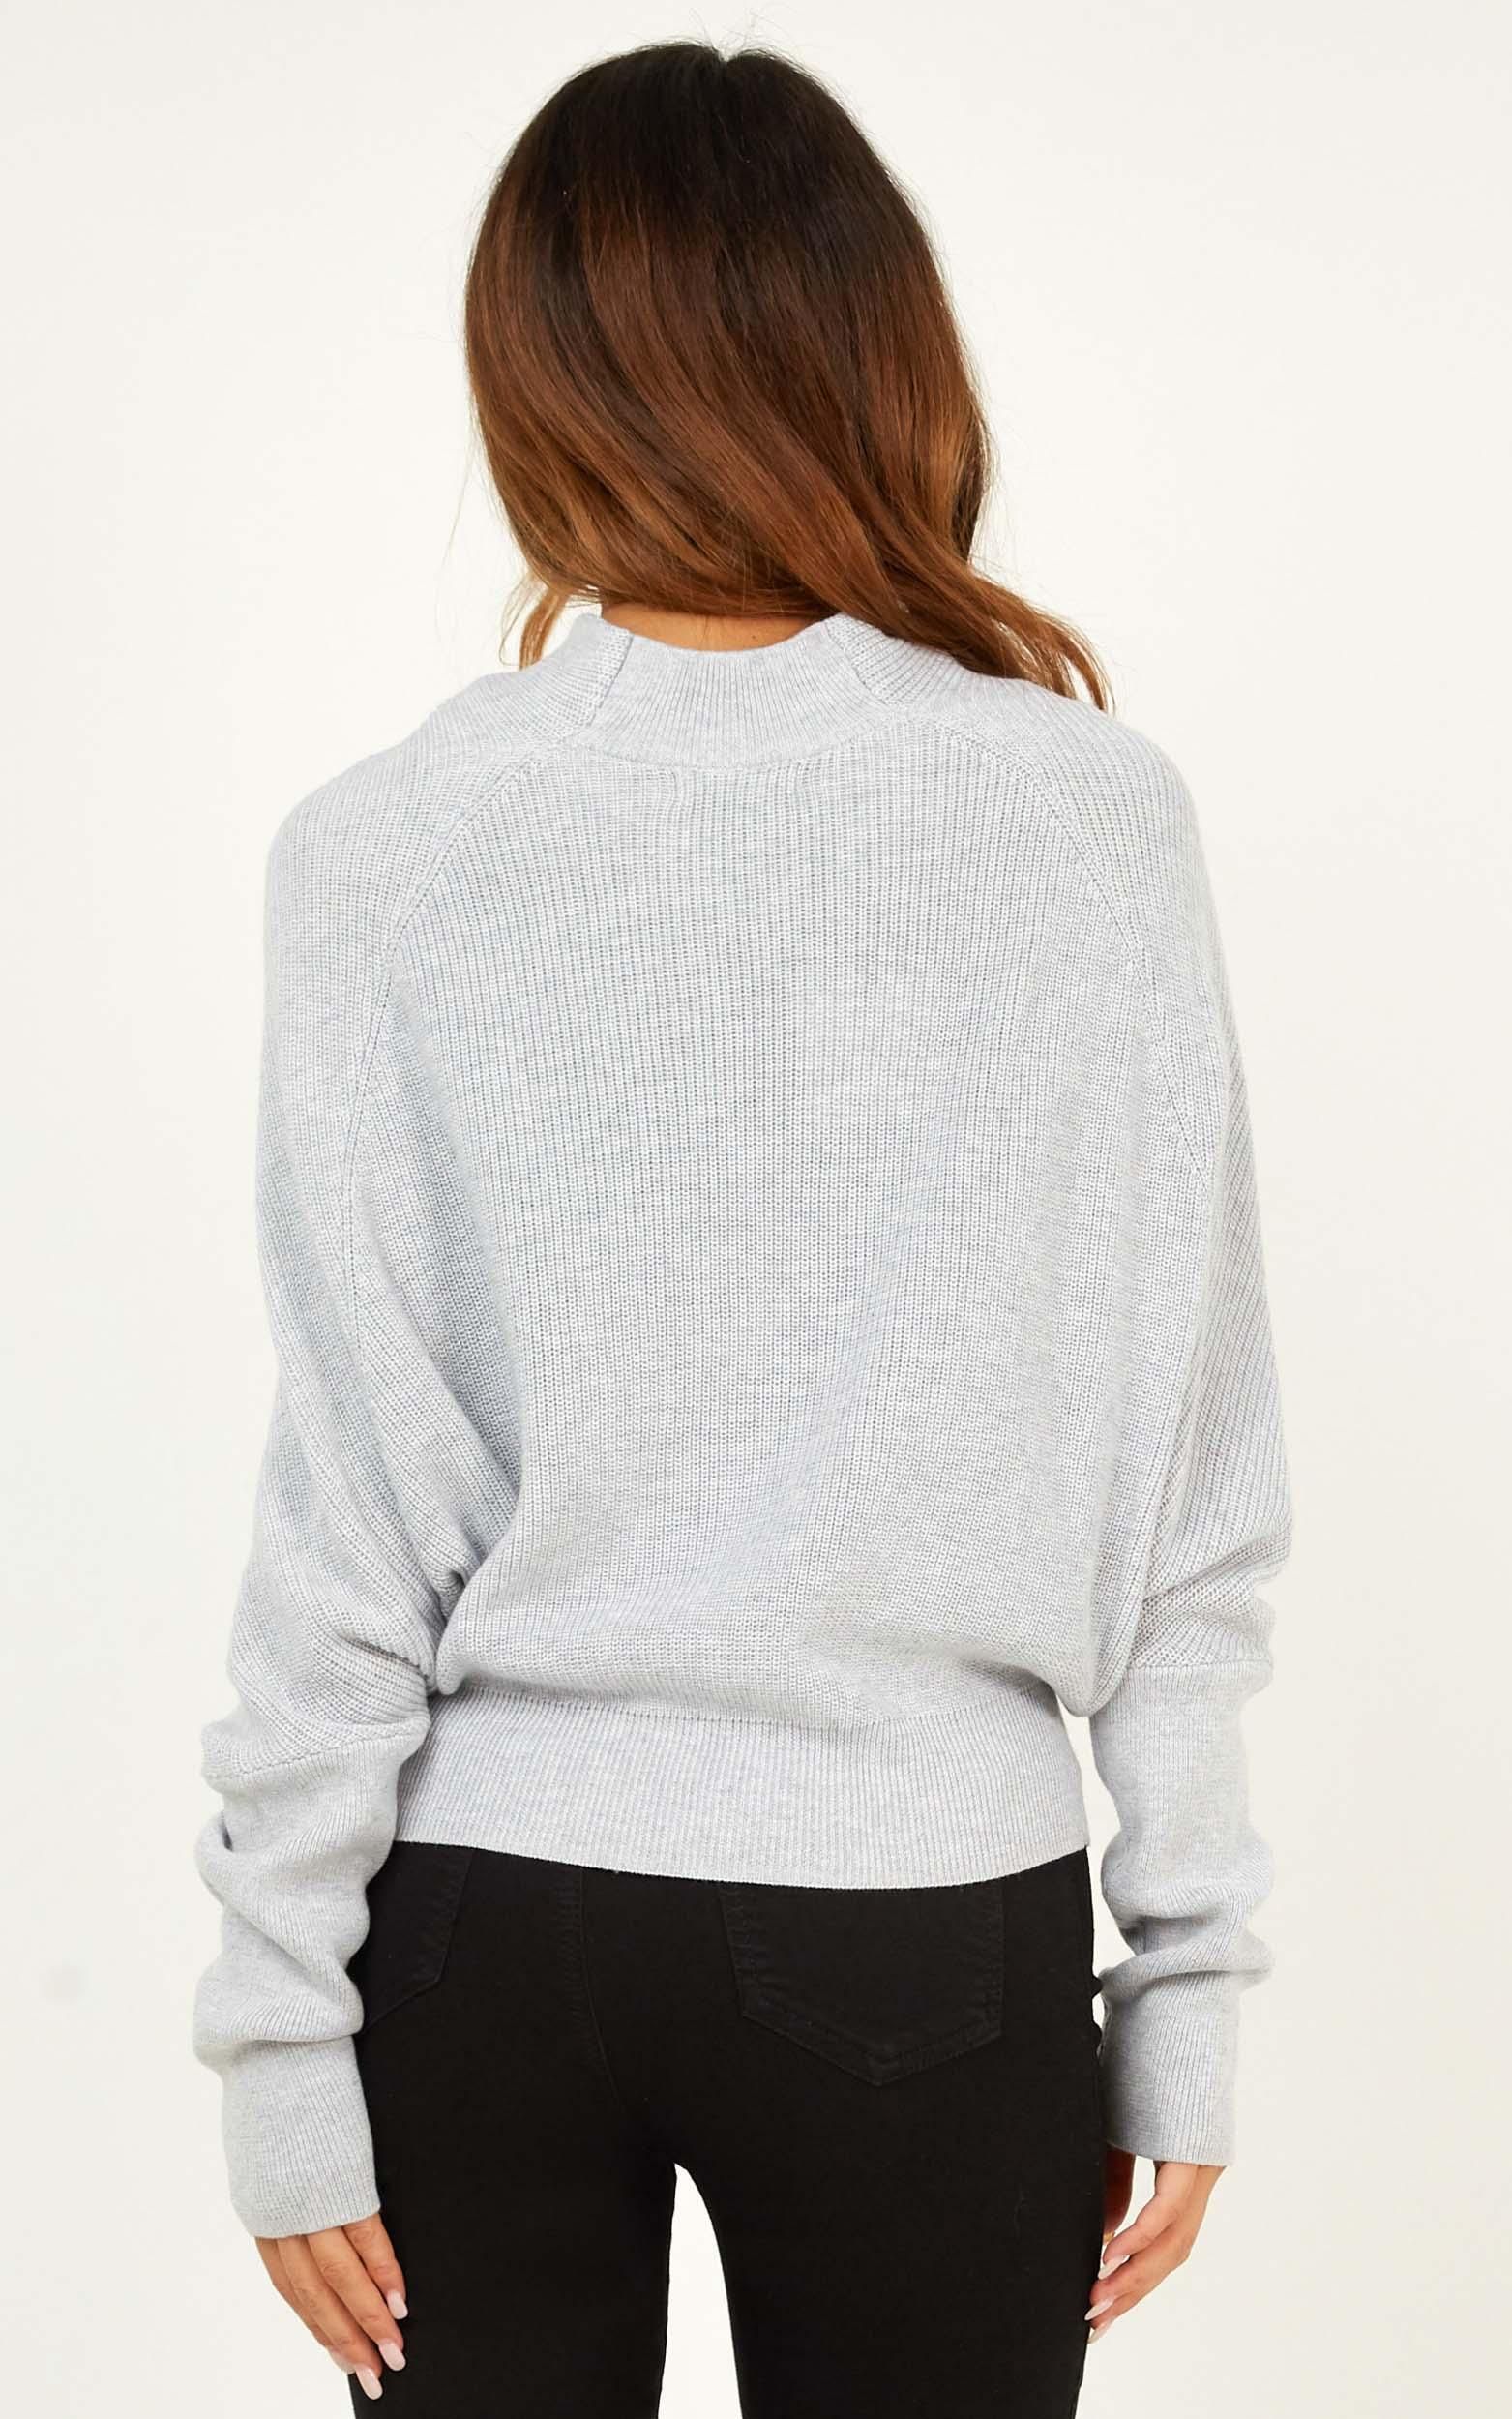 It Might Be You knit jumper in grey - 12 (L), Grey, hi-res image number null